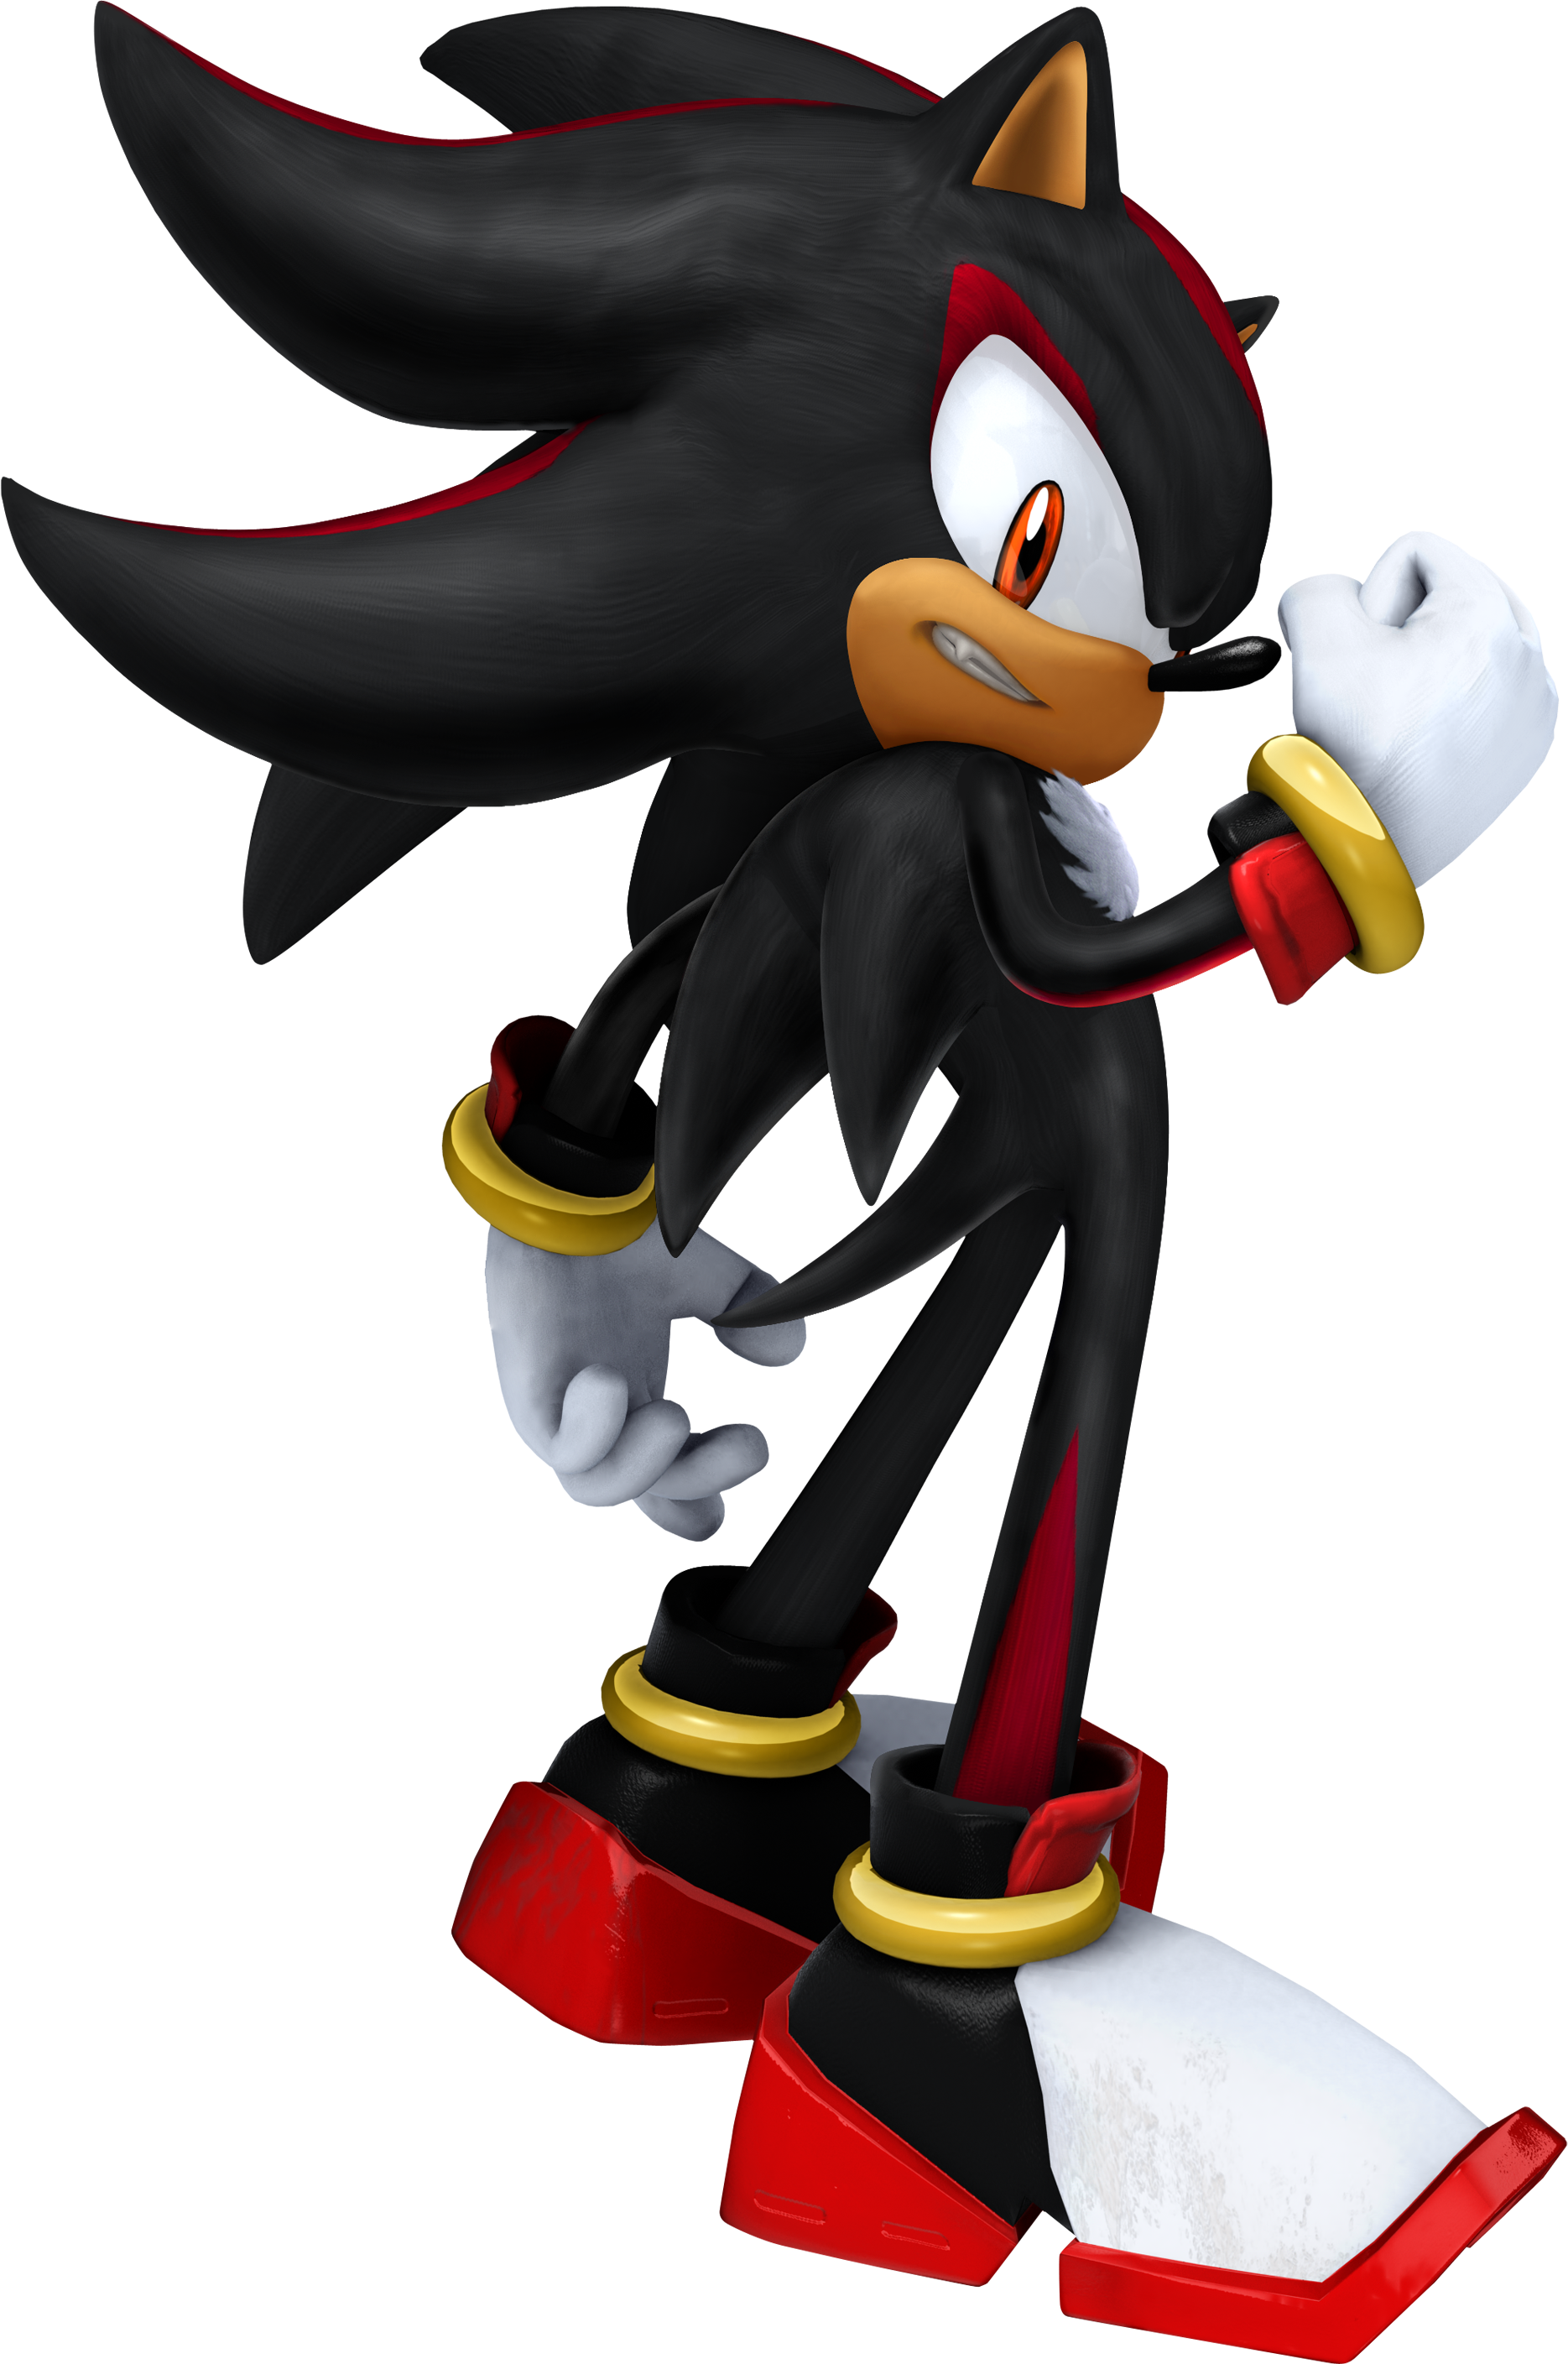 Gallery » Official Art » Shadow the Hedgehog » SONIC THE HEDGEHOG